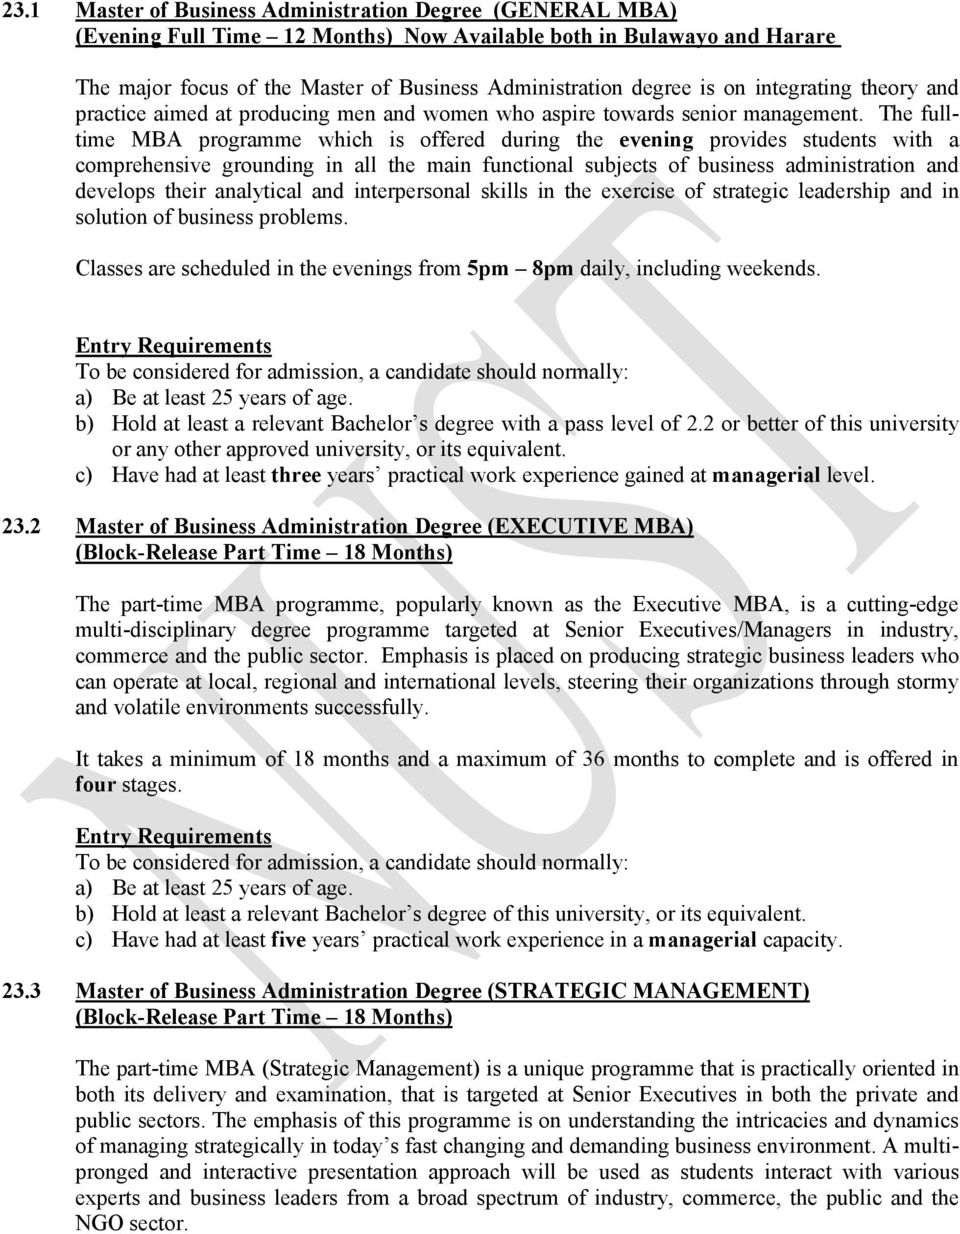 NATIONAL UNIVERSITY OF SCIENCE AND TECHNOLOGY - PDF